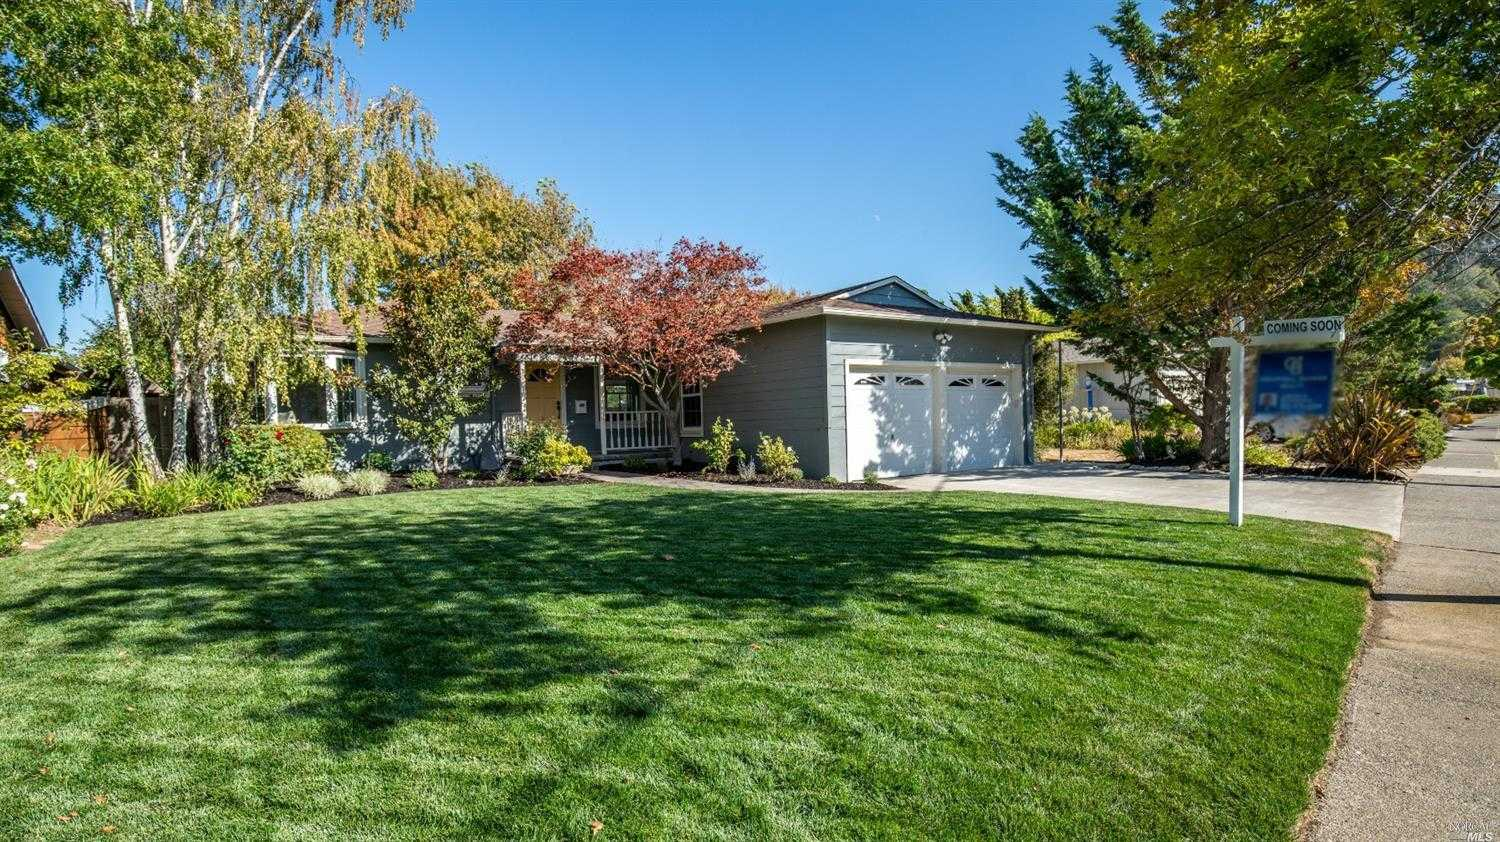 $1,850,000 - 4Br/2Ba -  for Sale in Corte Madera